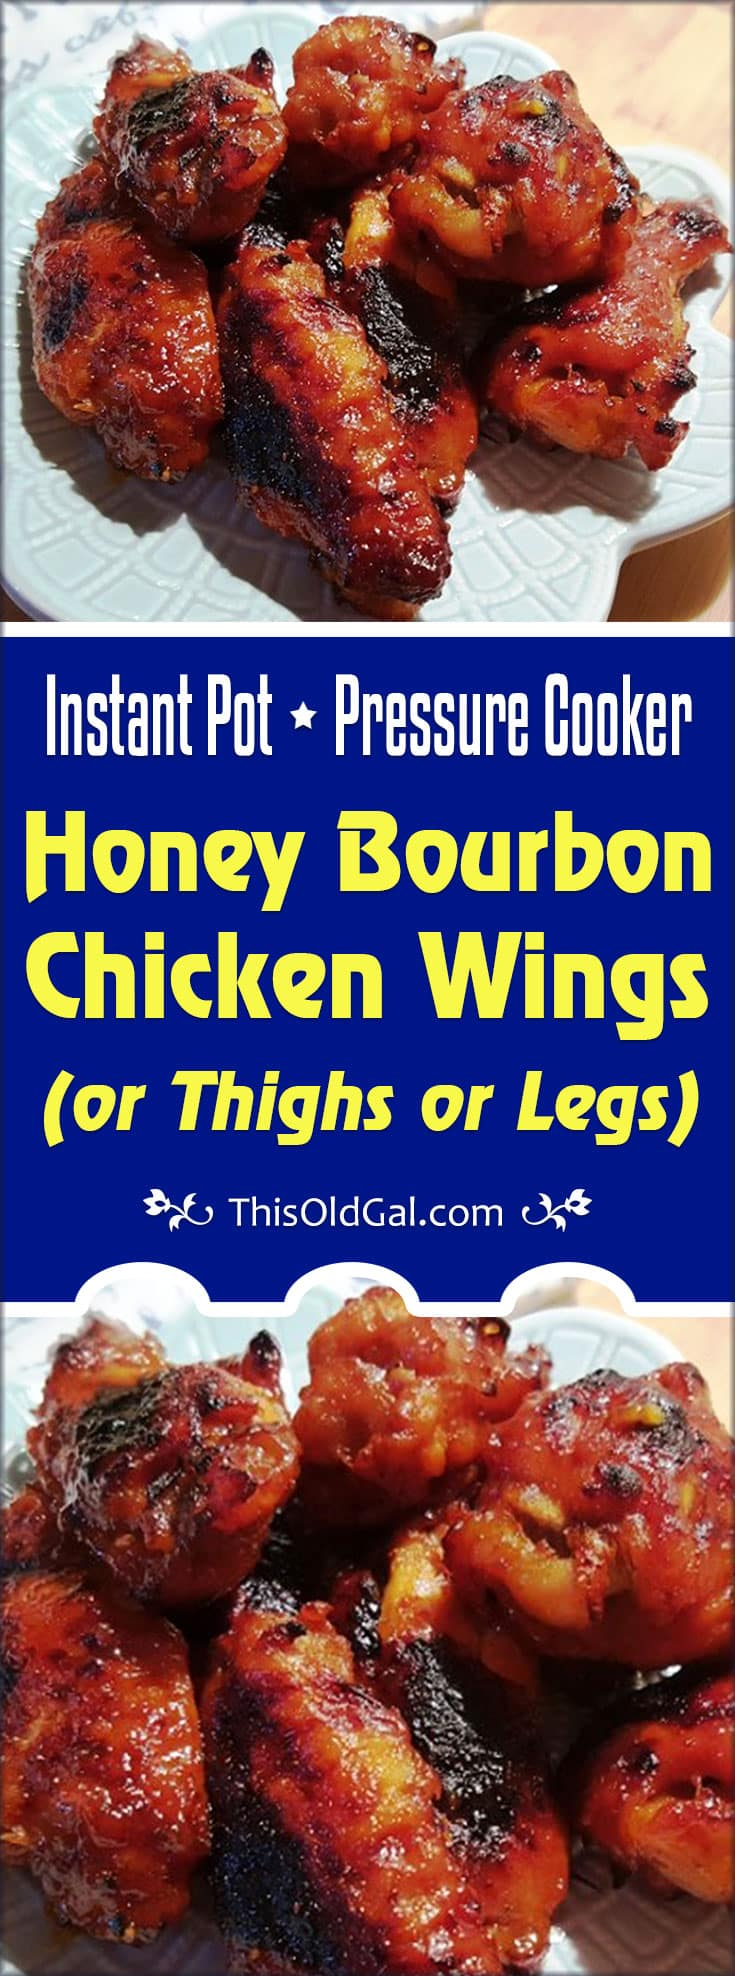 Pressure Cooker Honey Bourbon Chicken Wings (or Thighs or Legs)